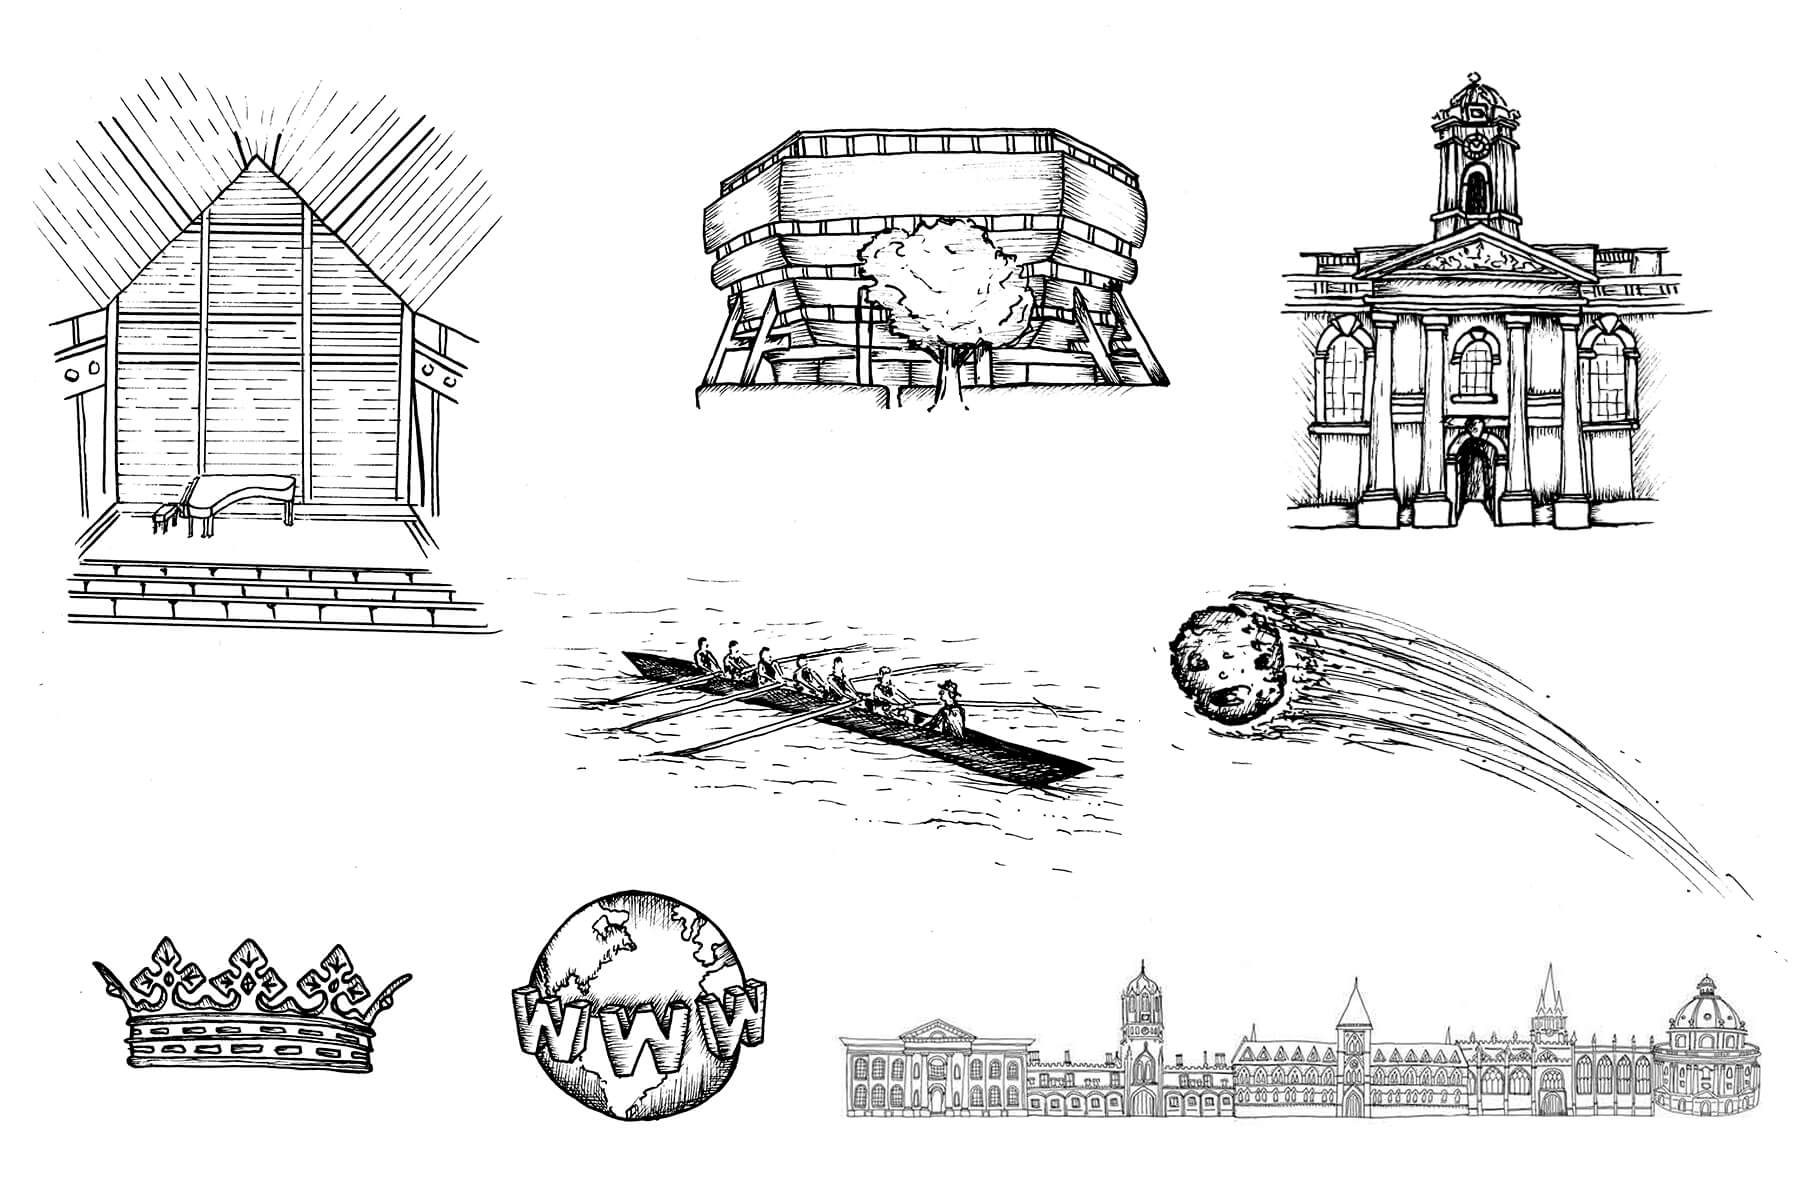 University of Oxford Drawings